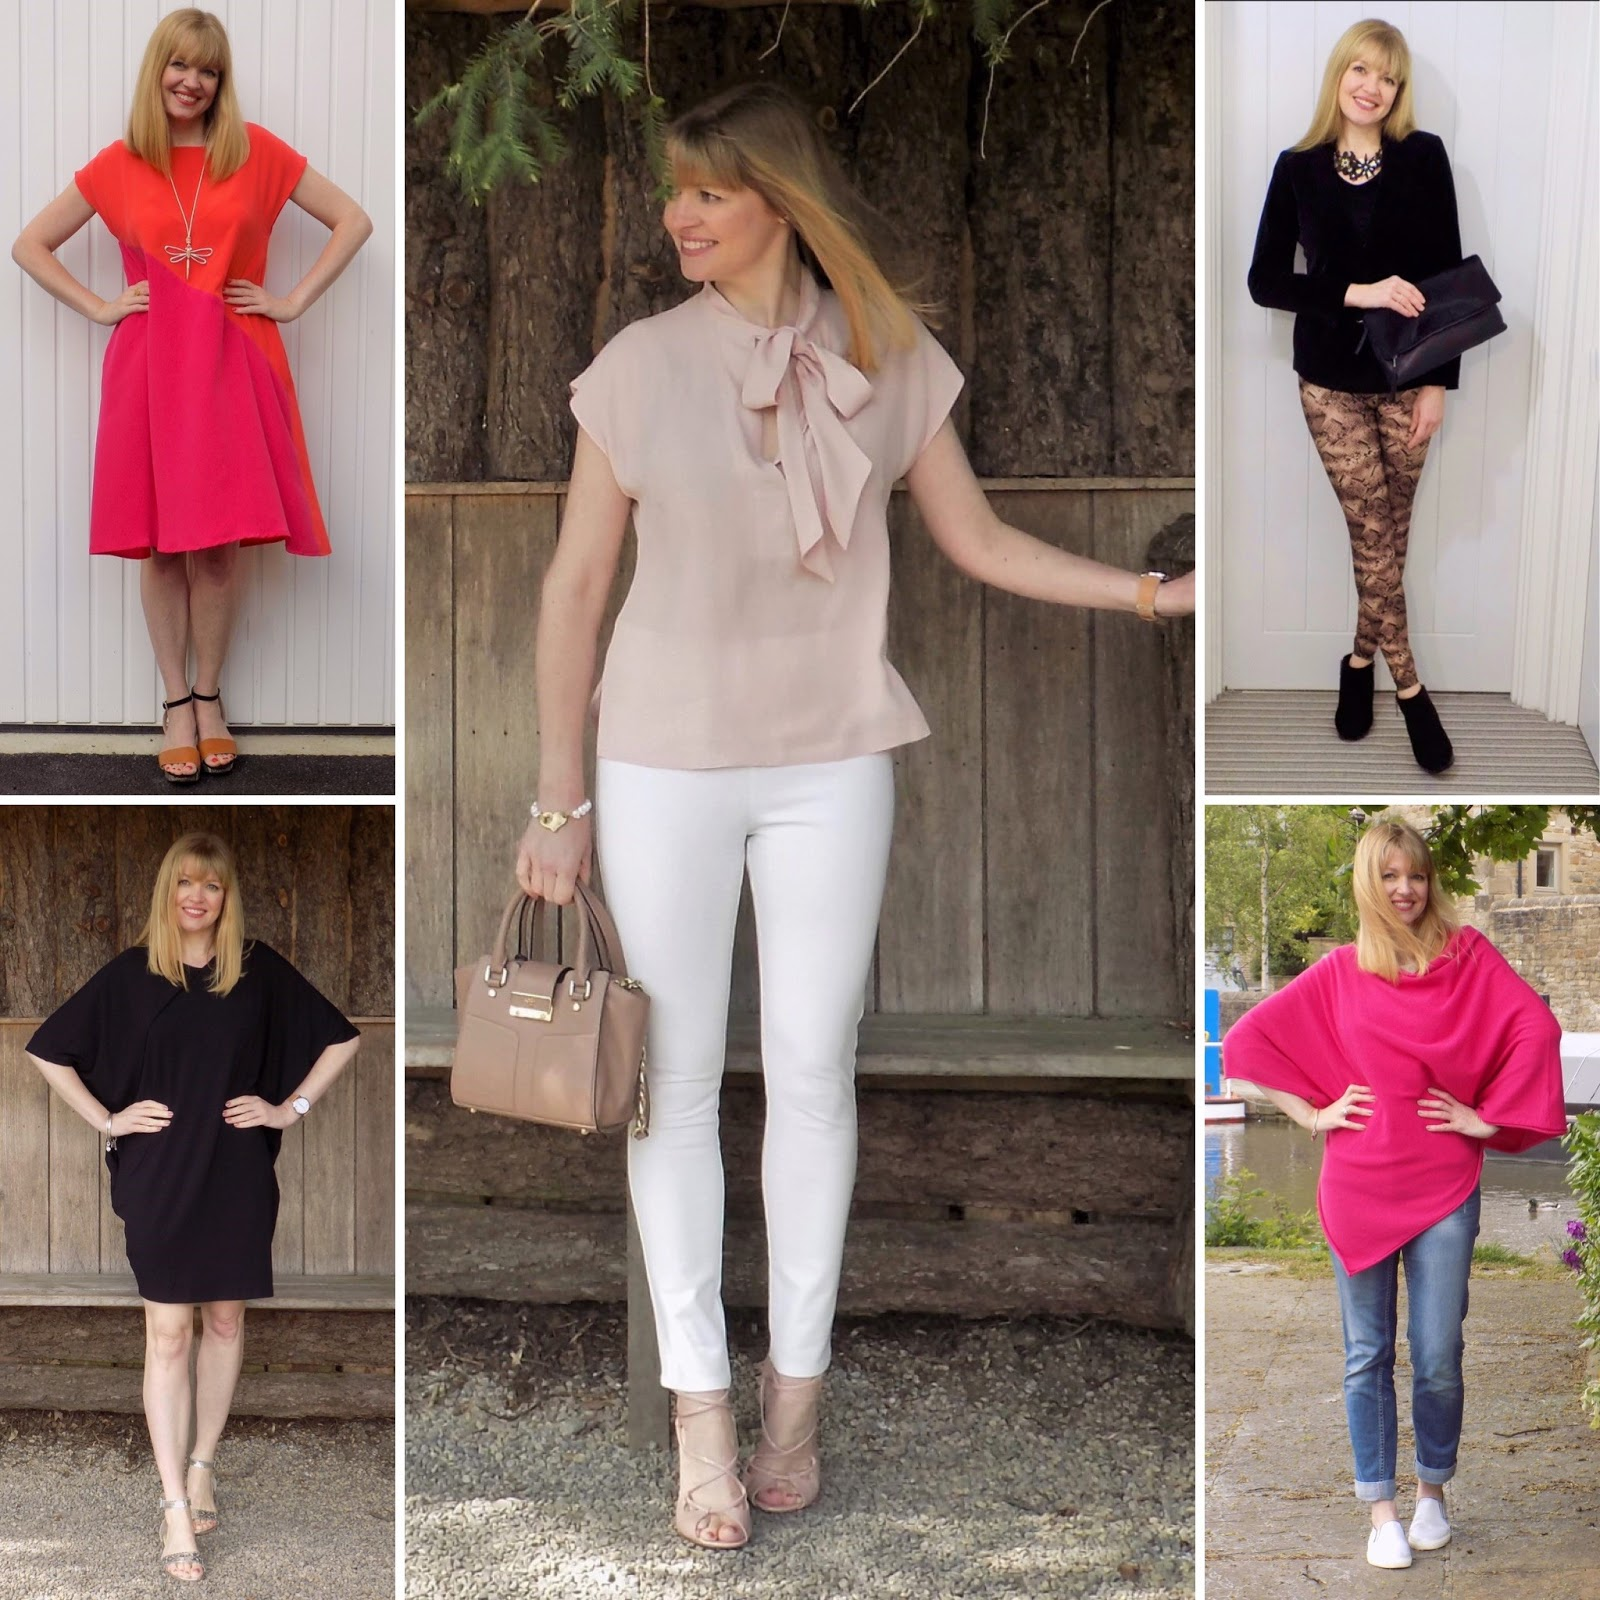 Hope fashion collage, over 40 style